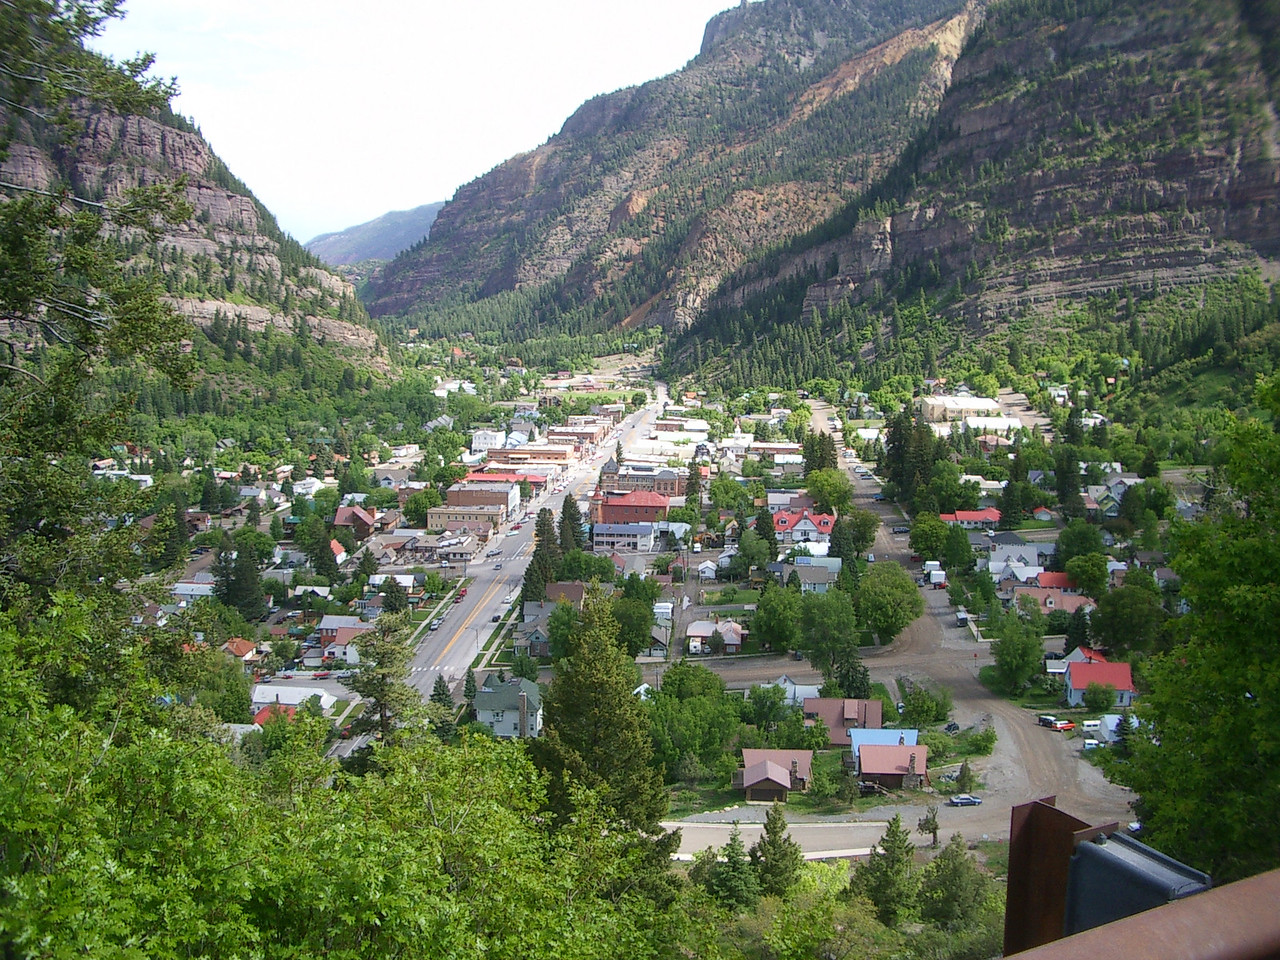 Descending into Ouray.